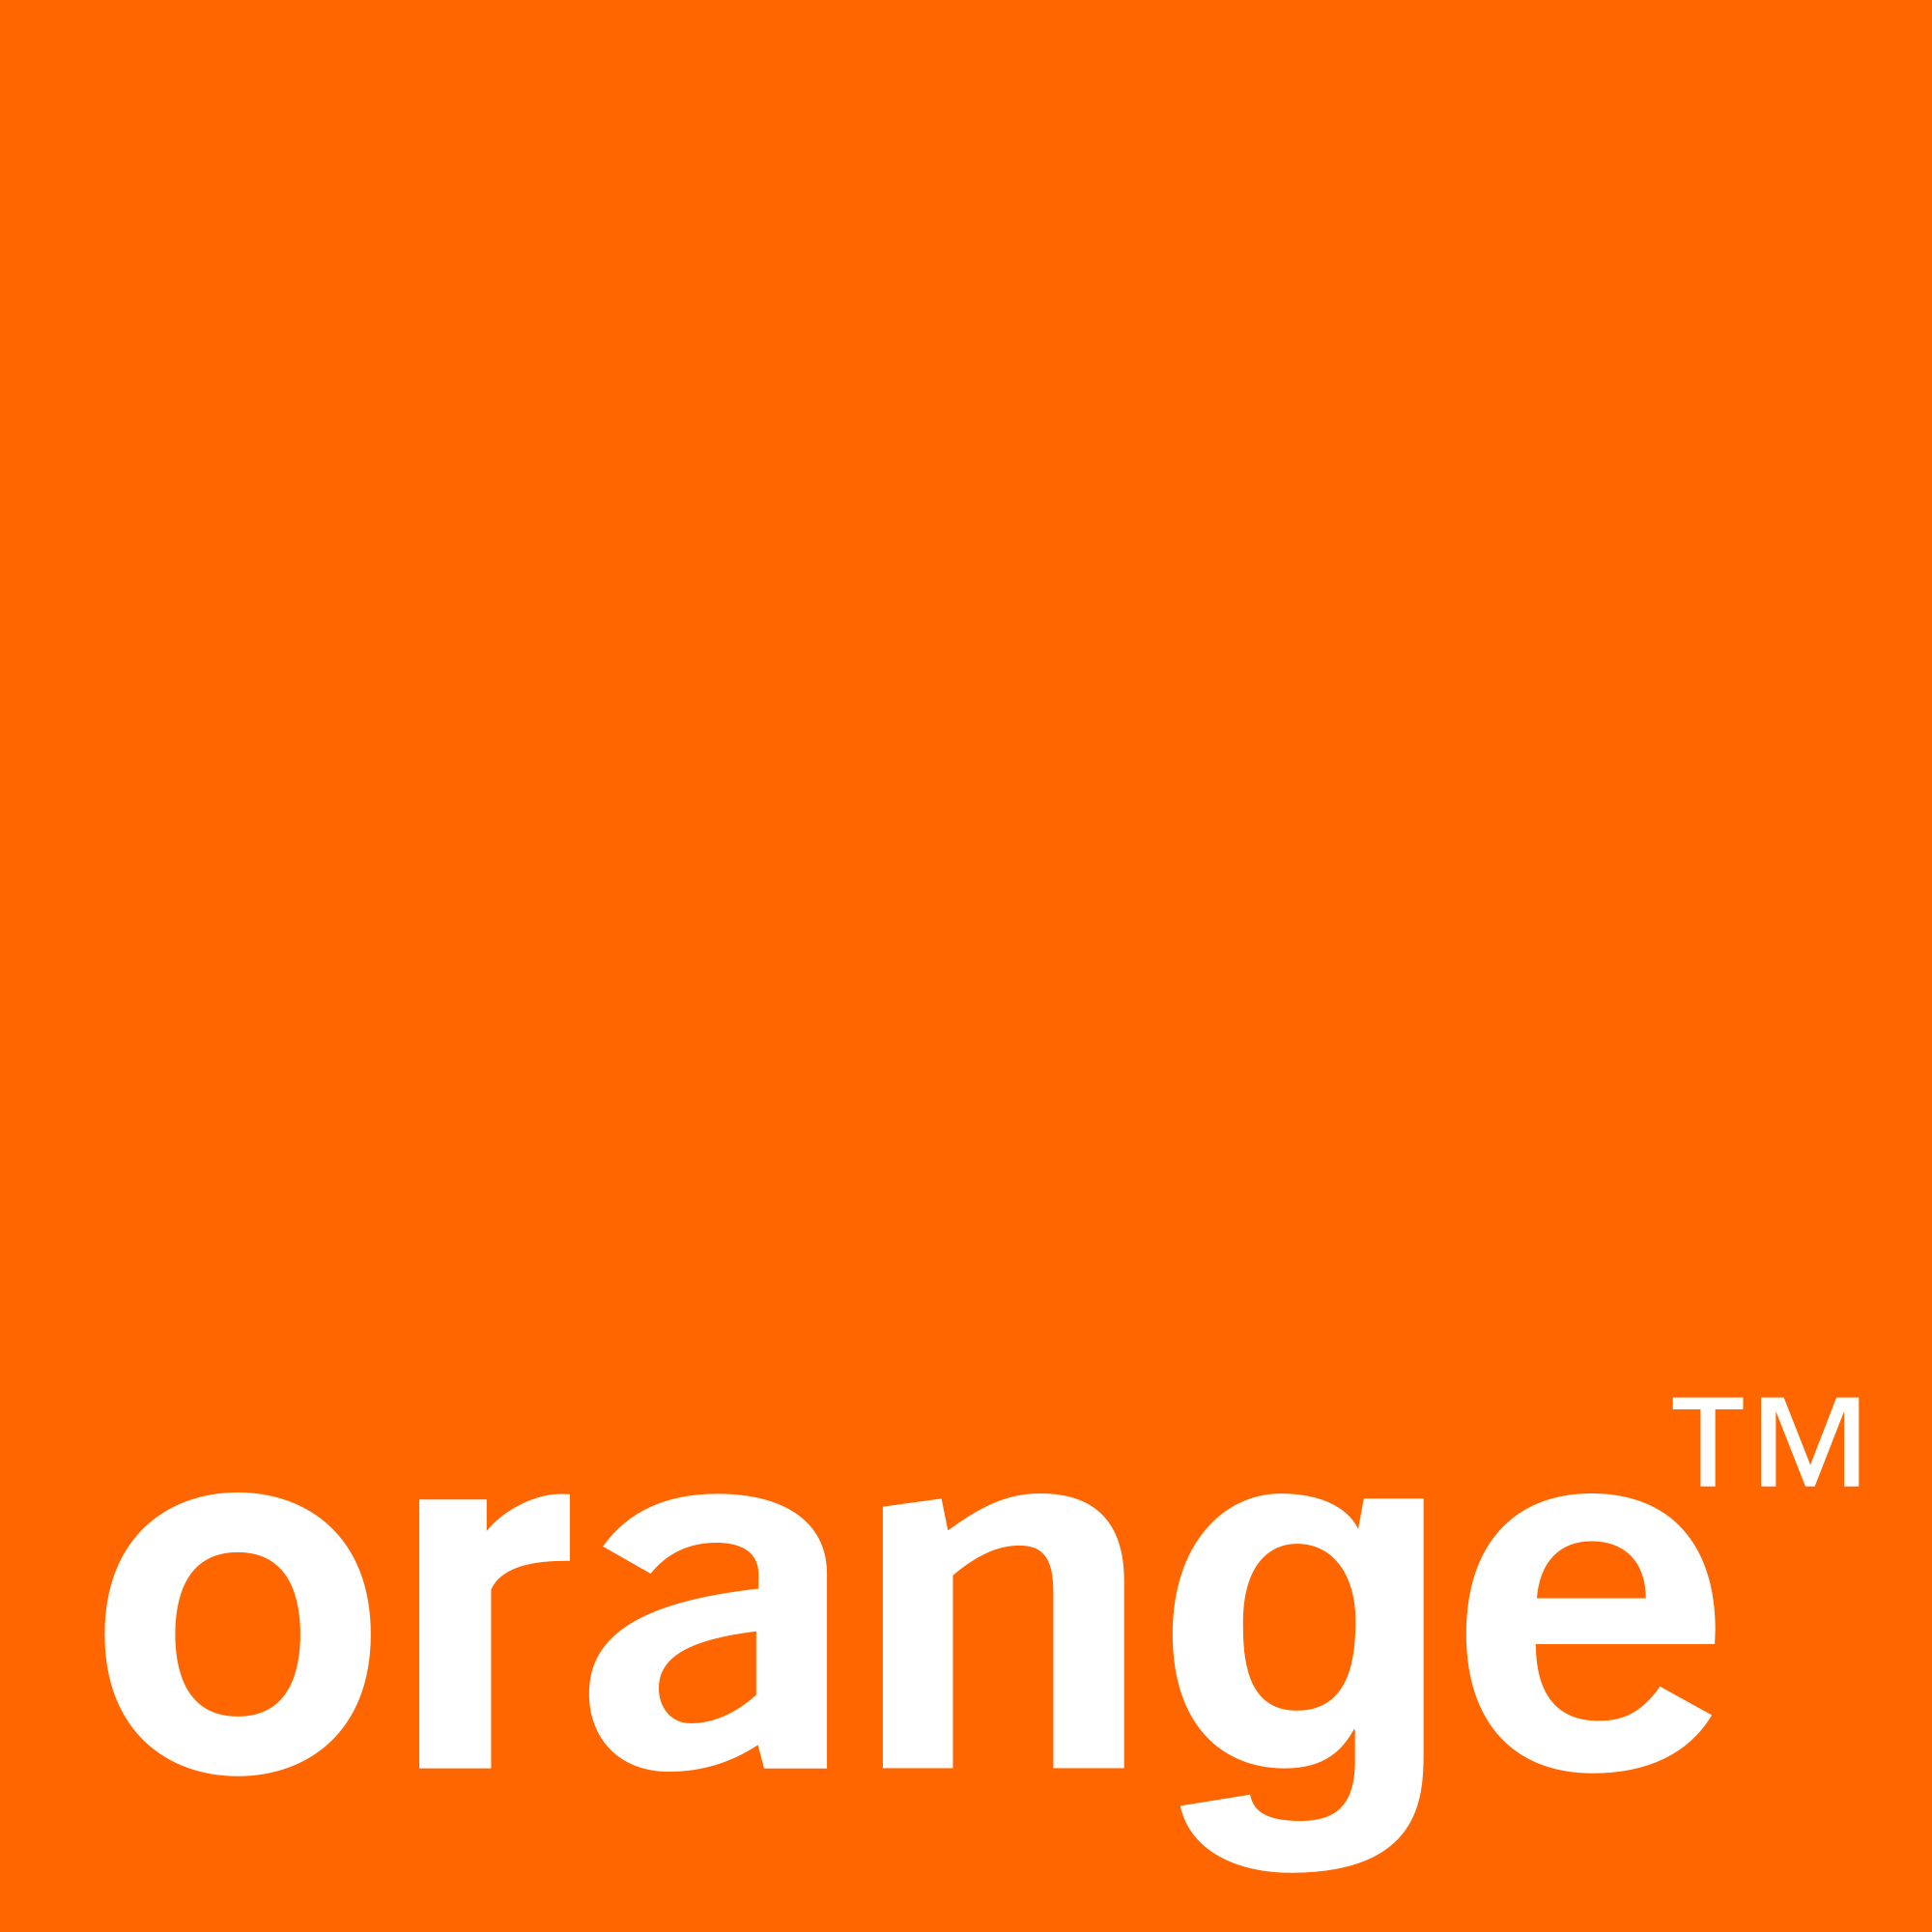 Orange s'intéresse à la technologie Blockchain!